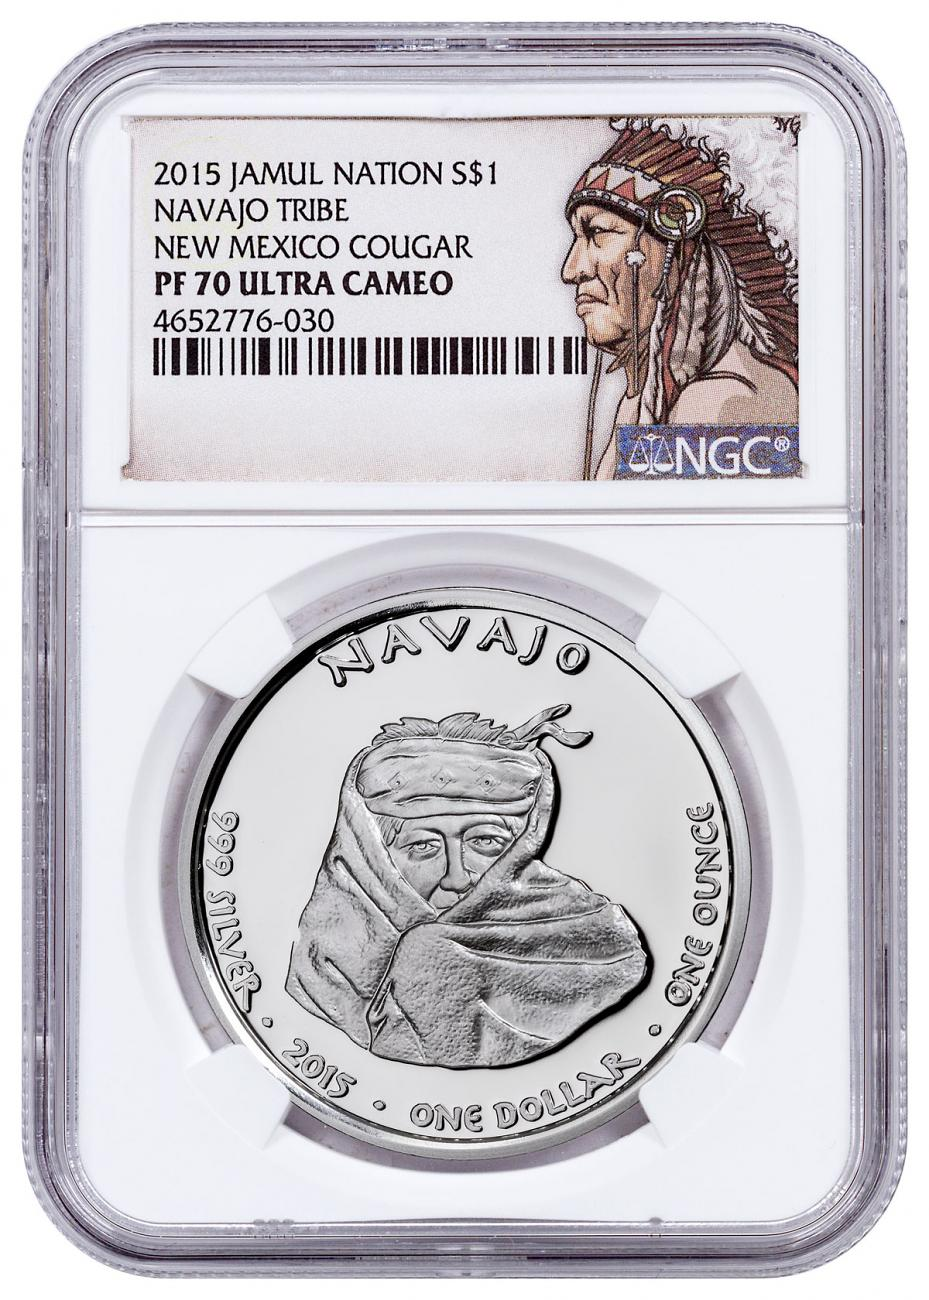 2015 Native American Silver Dollar - New Mexican Navajo - Cougar 1 oz Silver Proof Coin NGC PF70 UC Native American Label